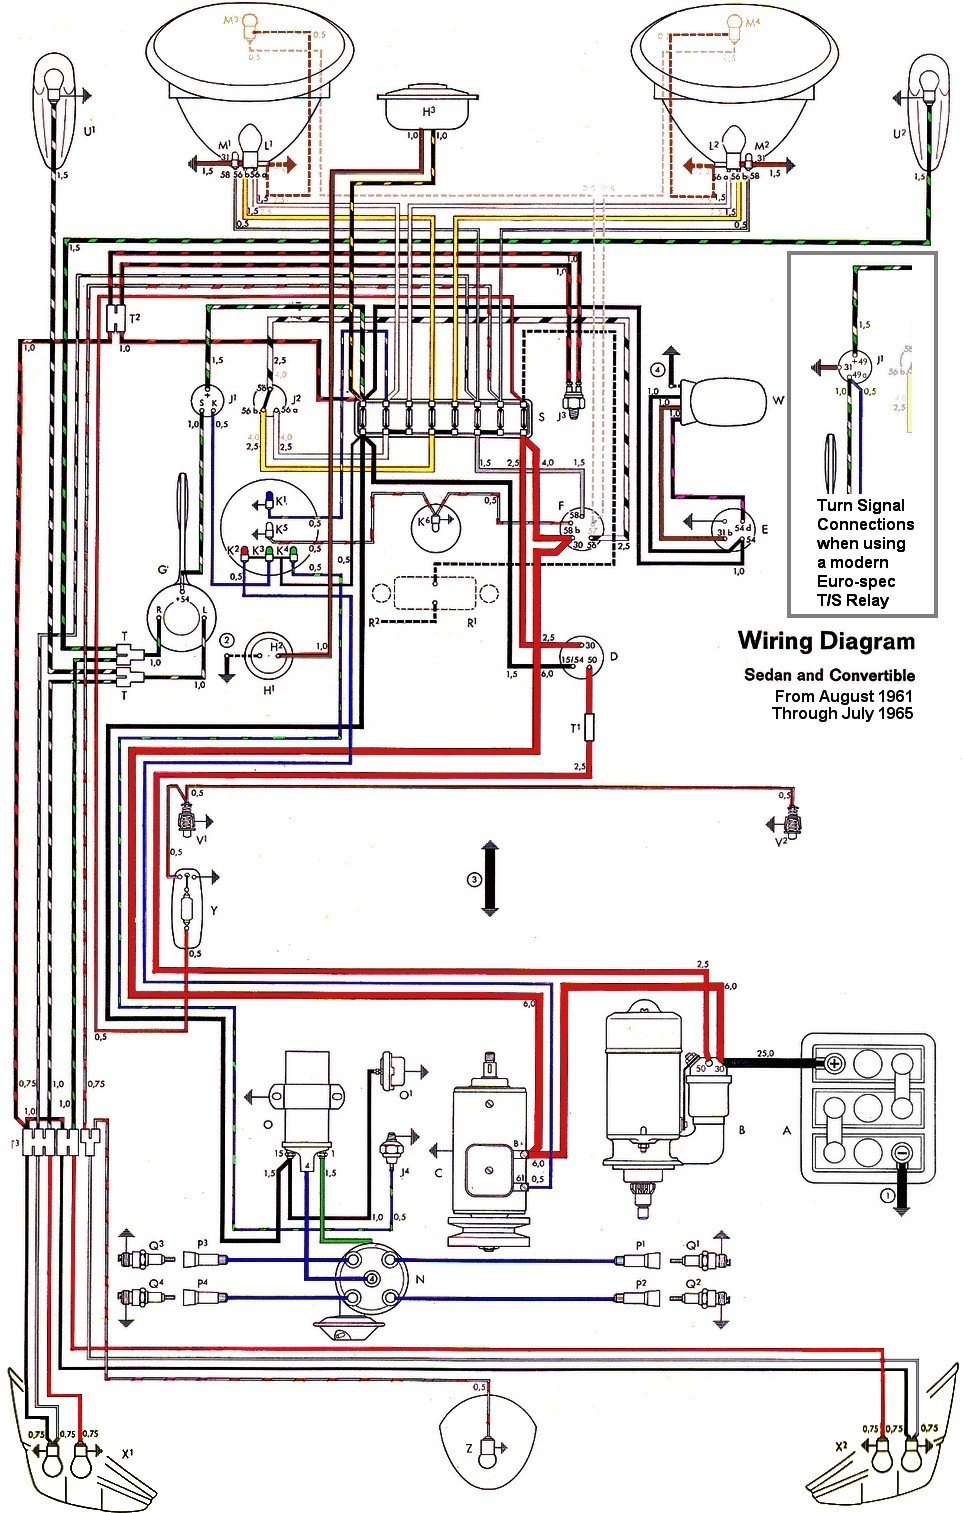 bug_62 65withinset wiring diagram vw beetle sedan and convertible 1961 1965 vw beetle wiring diagram to fix a/c fan at readyjetset.co